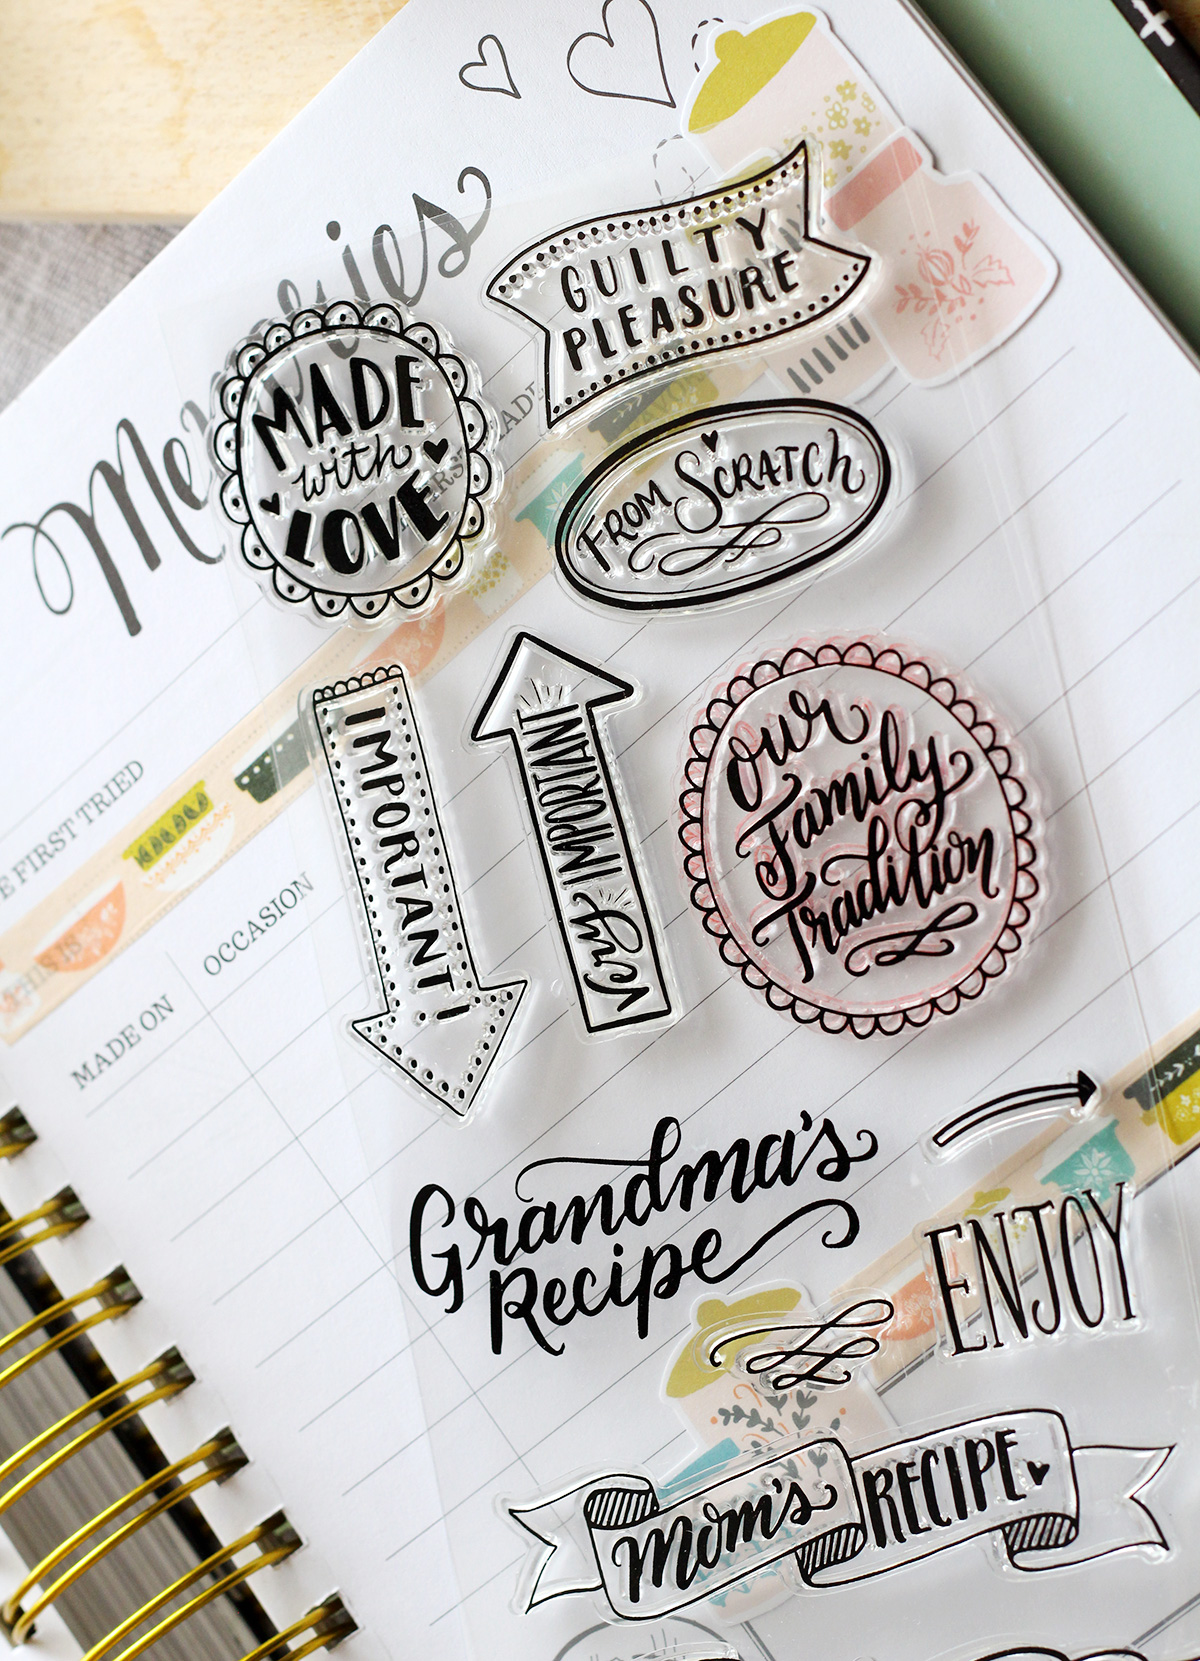 New Keepsake Kitchen Diary Stamps and Crafting Supplies